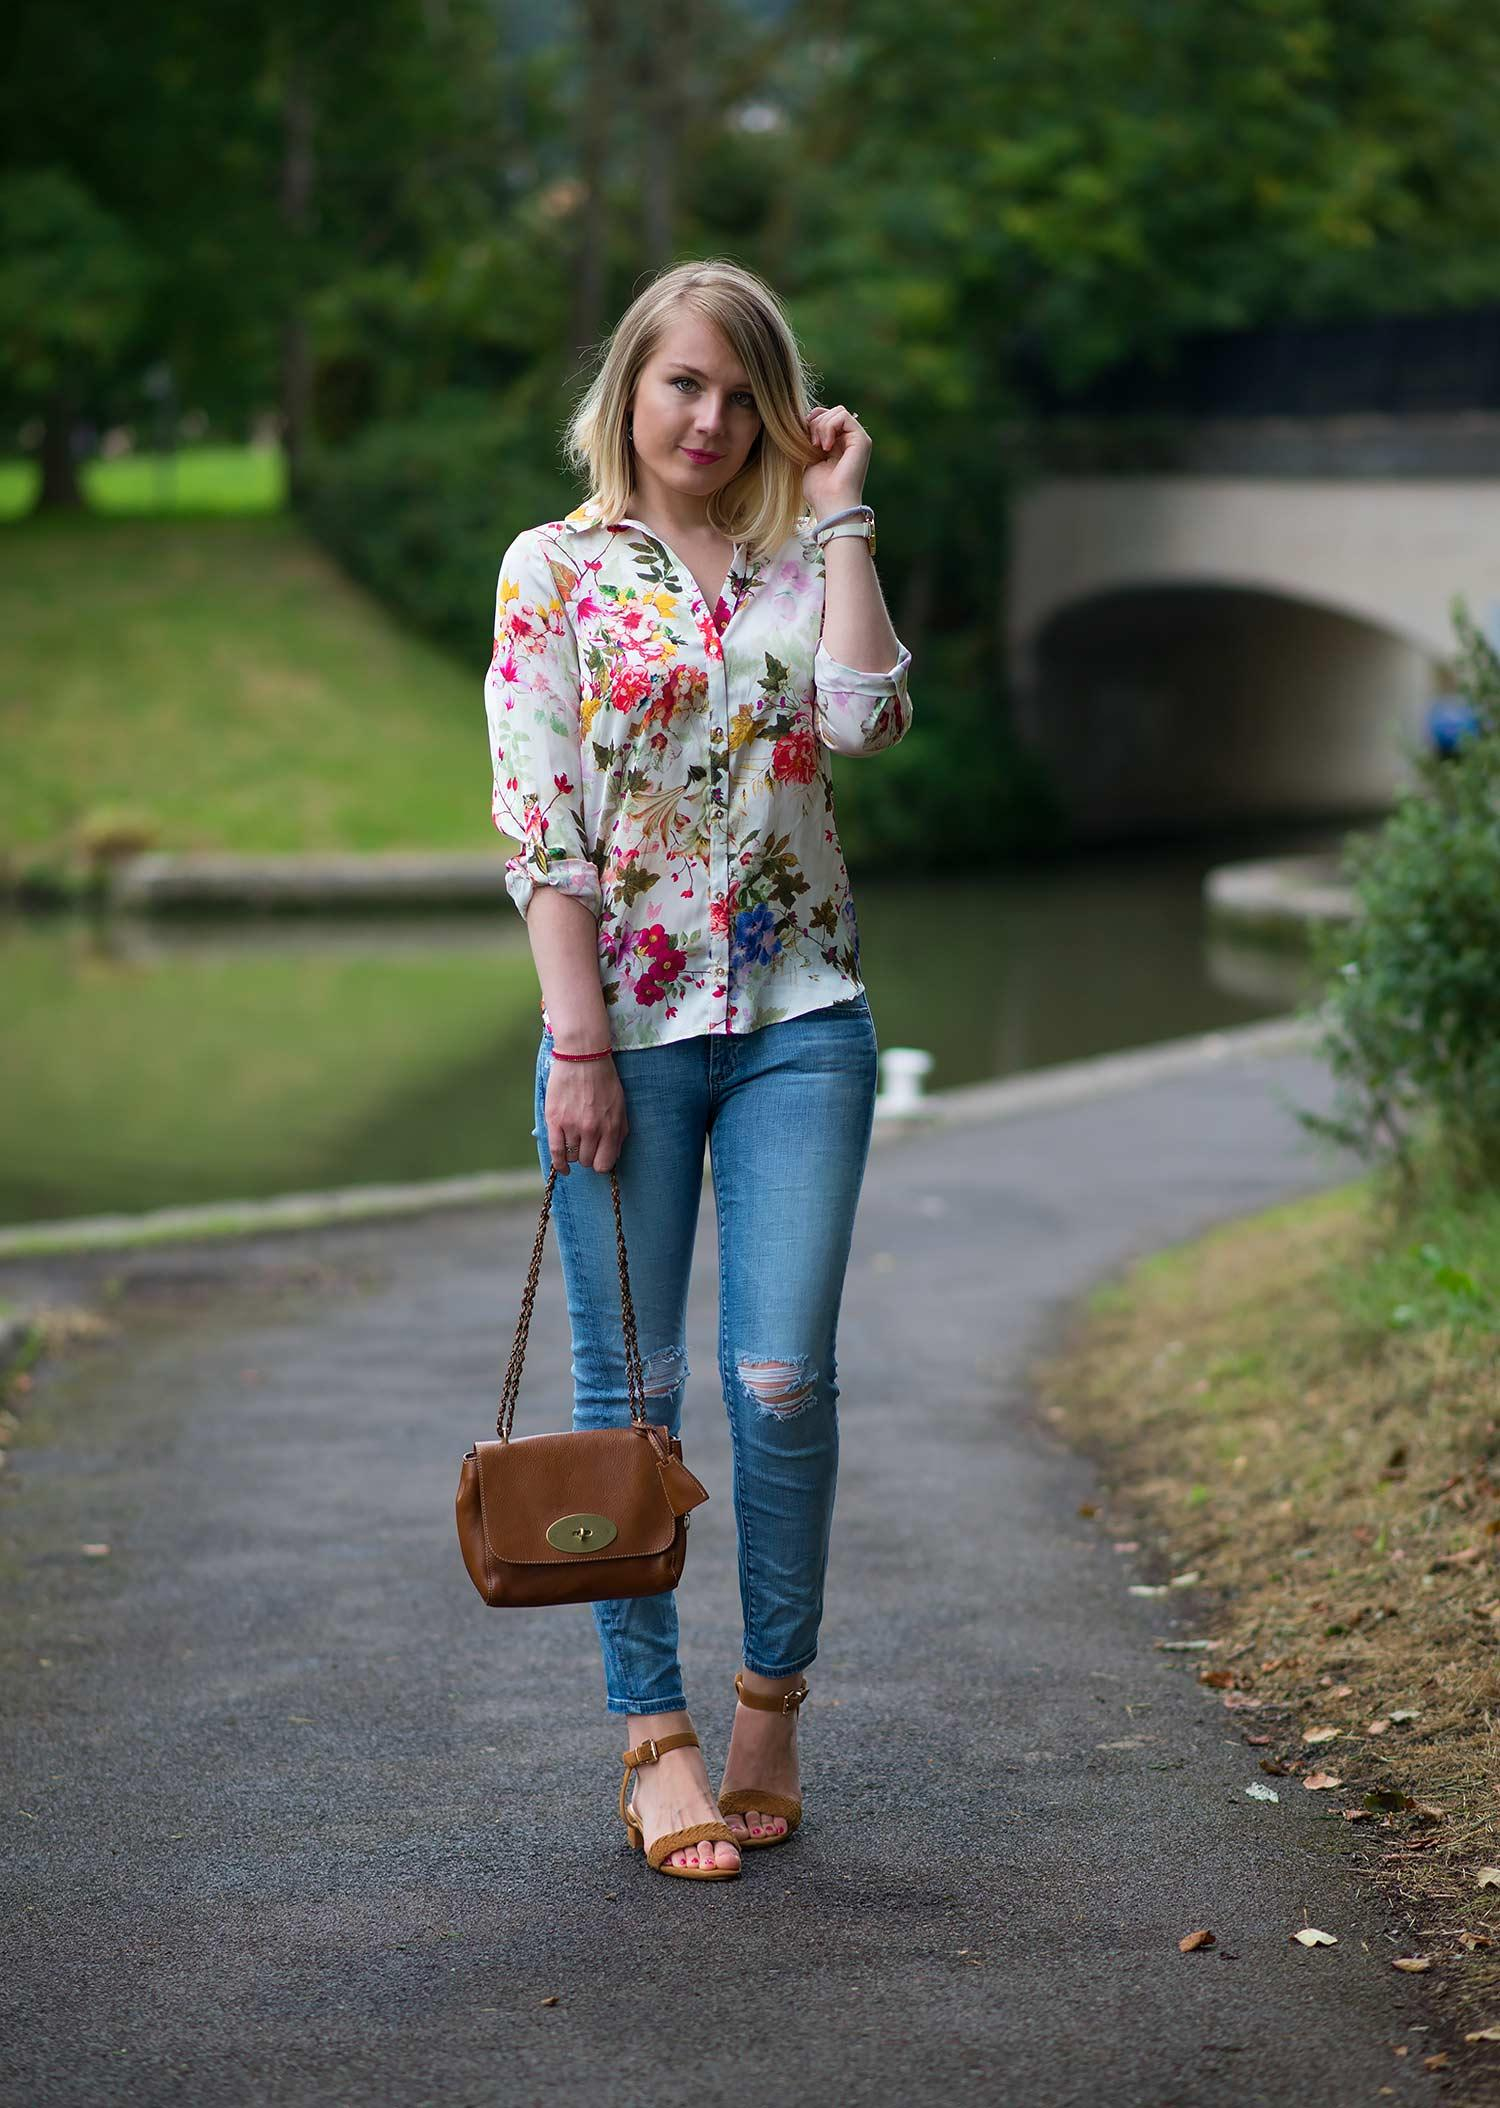 lorna-burford-floral-shirt-with-ag-jeans